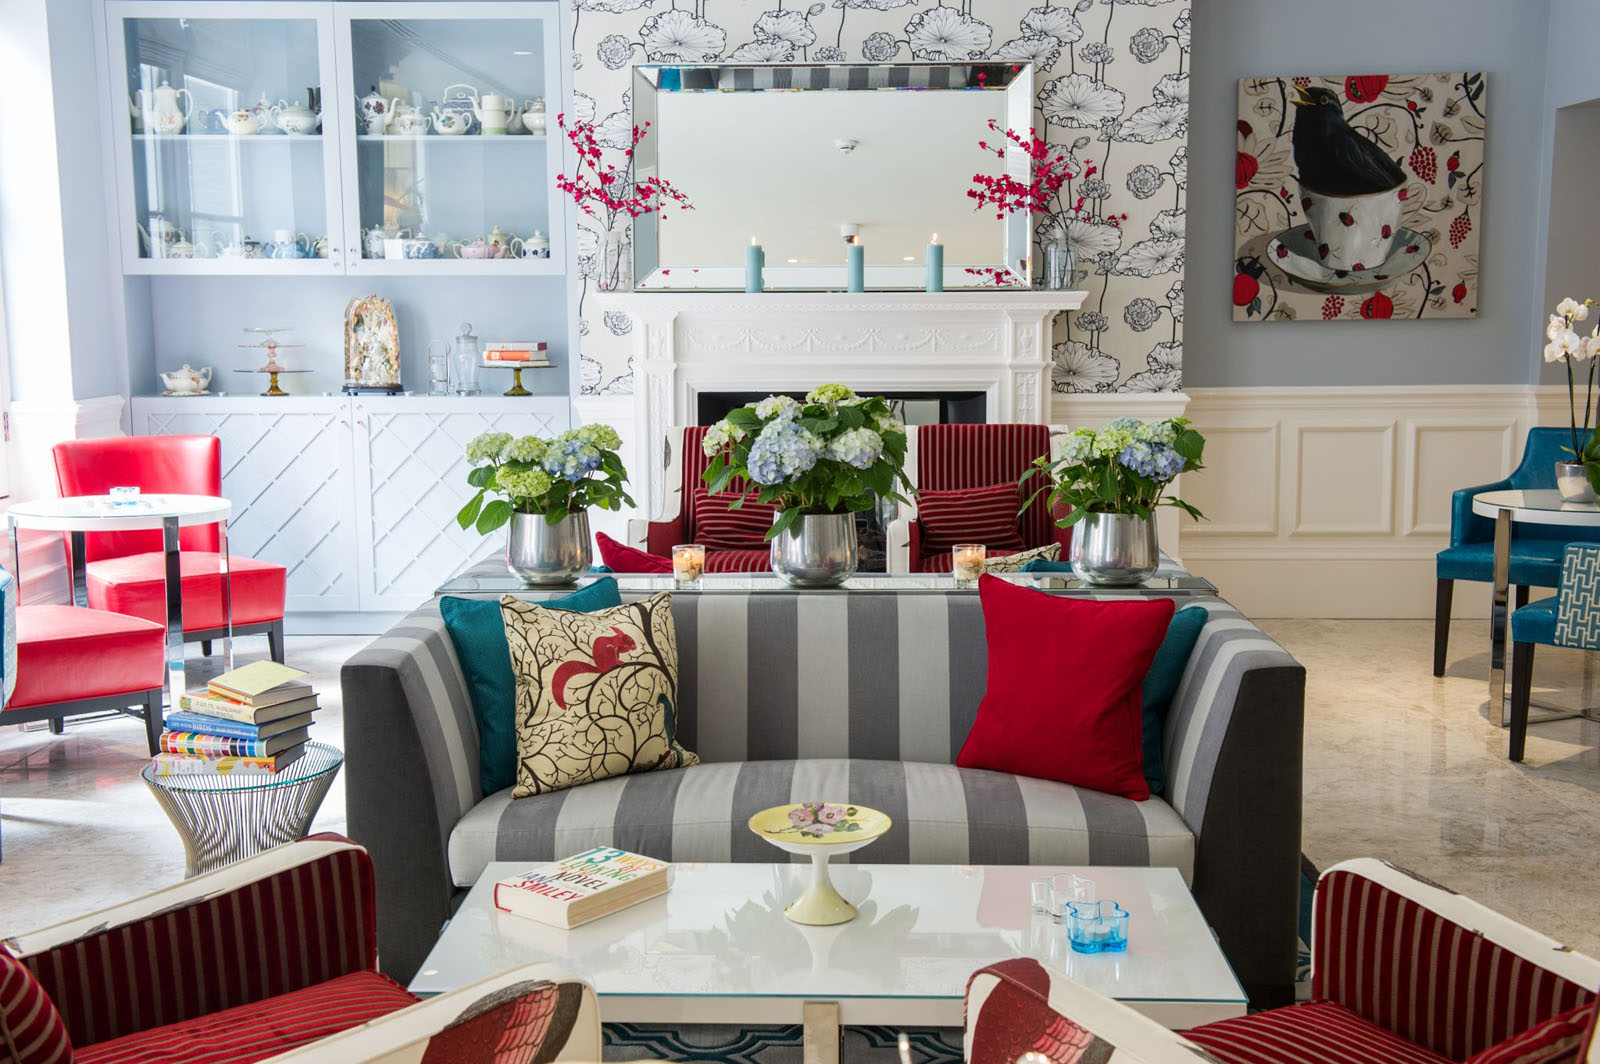 The ampersand hotel london victorian architecture with modern whimsical decor